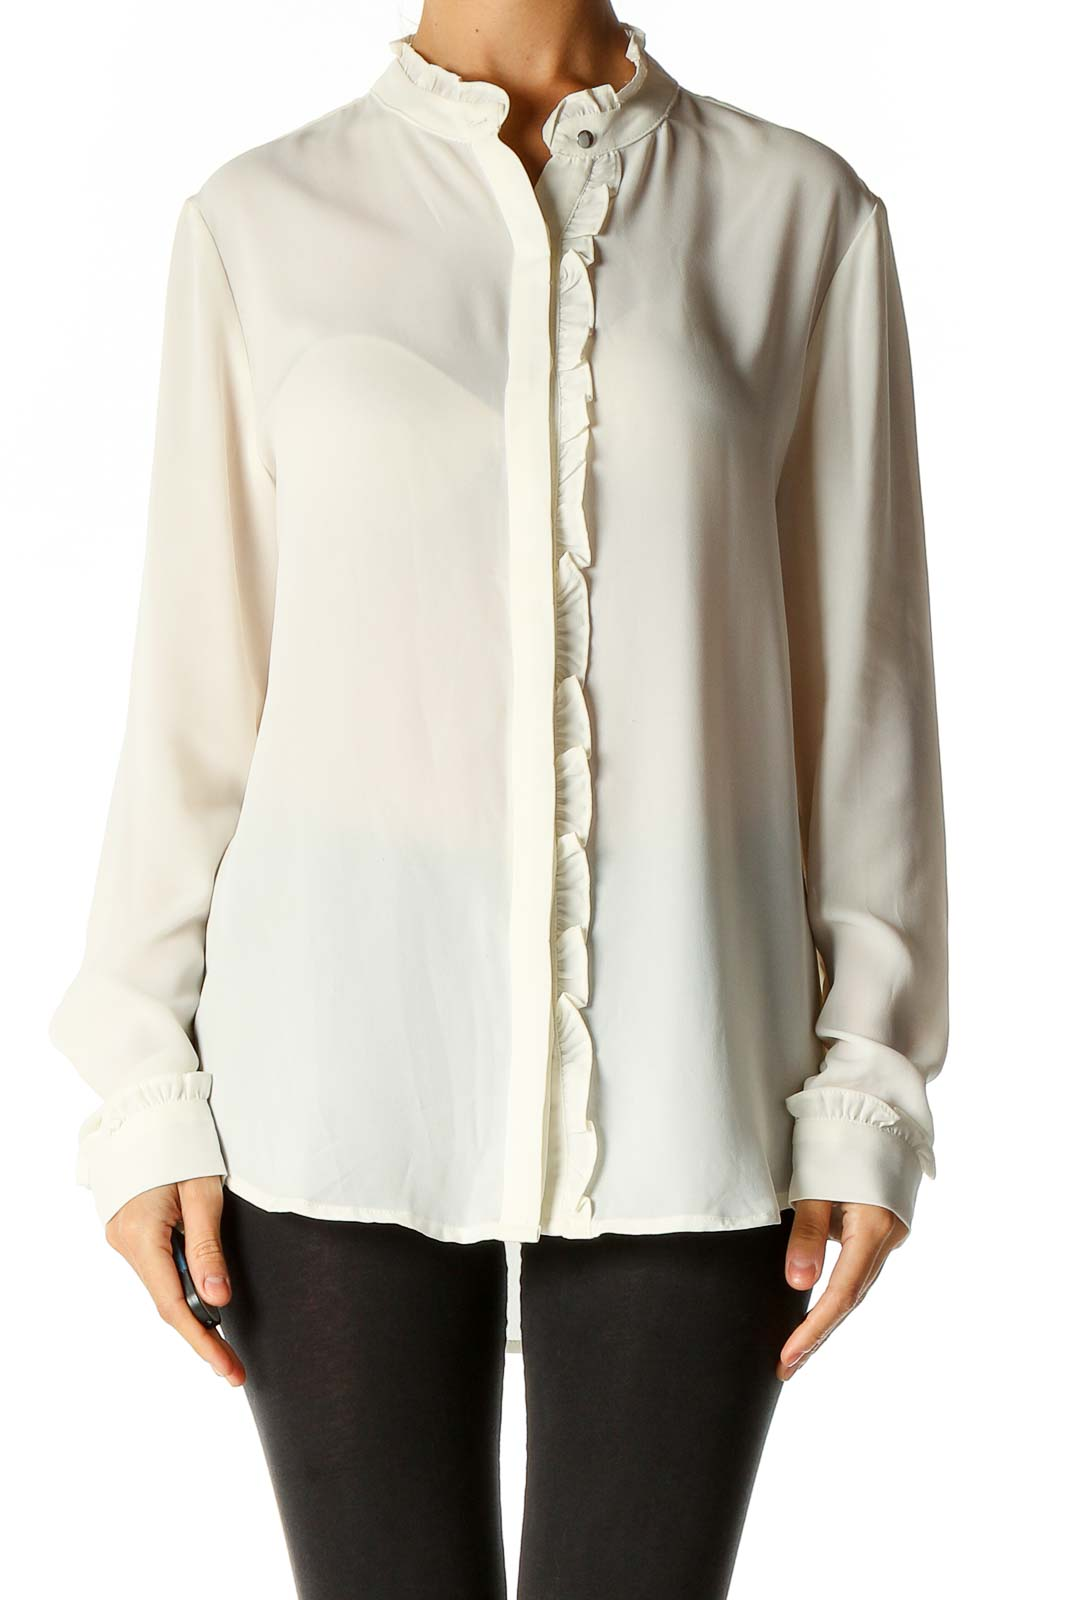 White Solid Brunch Blouse Front